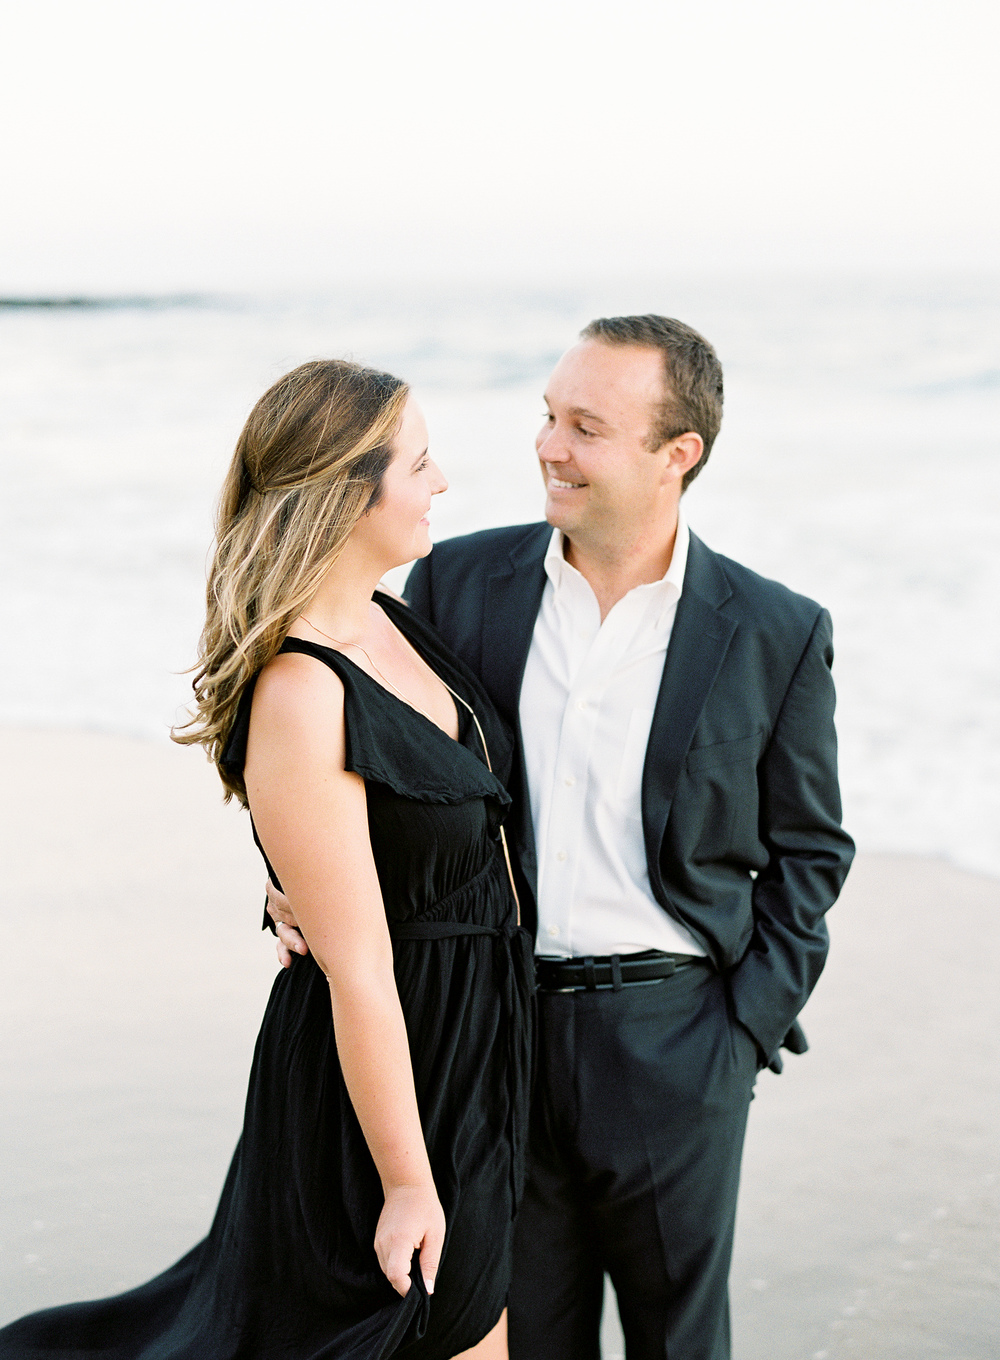 Laguna-Beach-Engagement-Film-Wedding-Orange-County-112.jpg